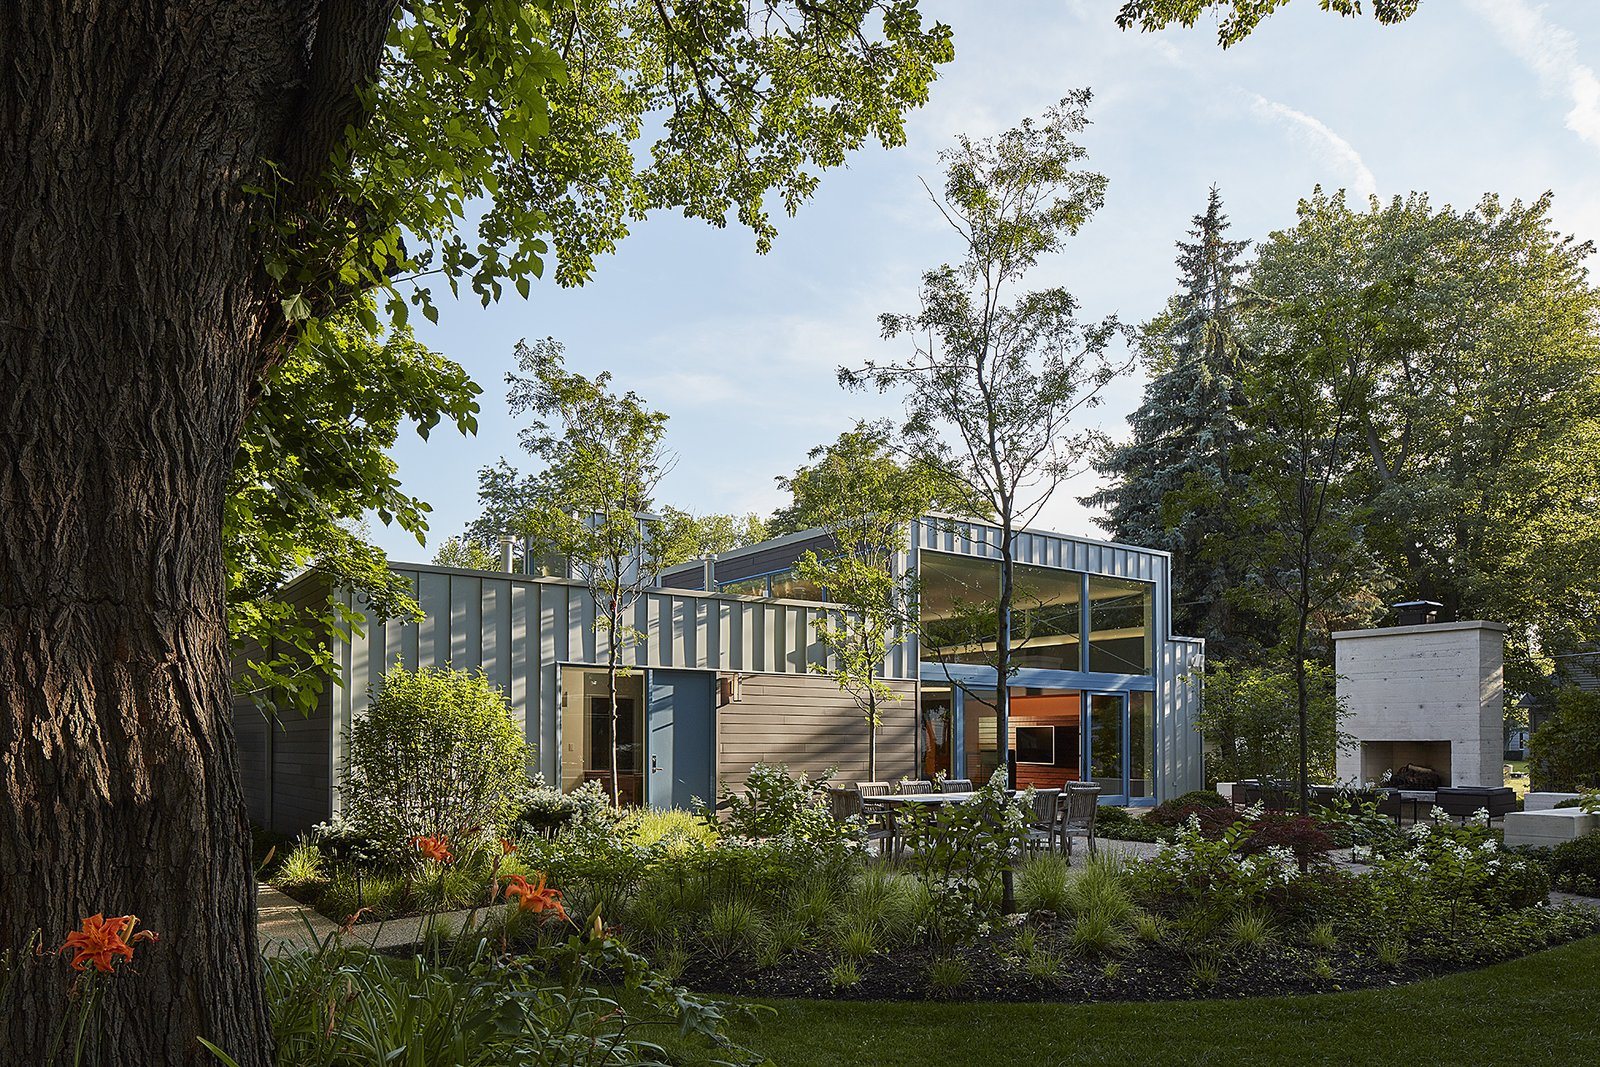 Articles about well grafted home on Dwell.com